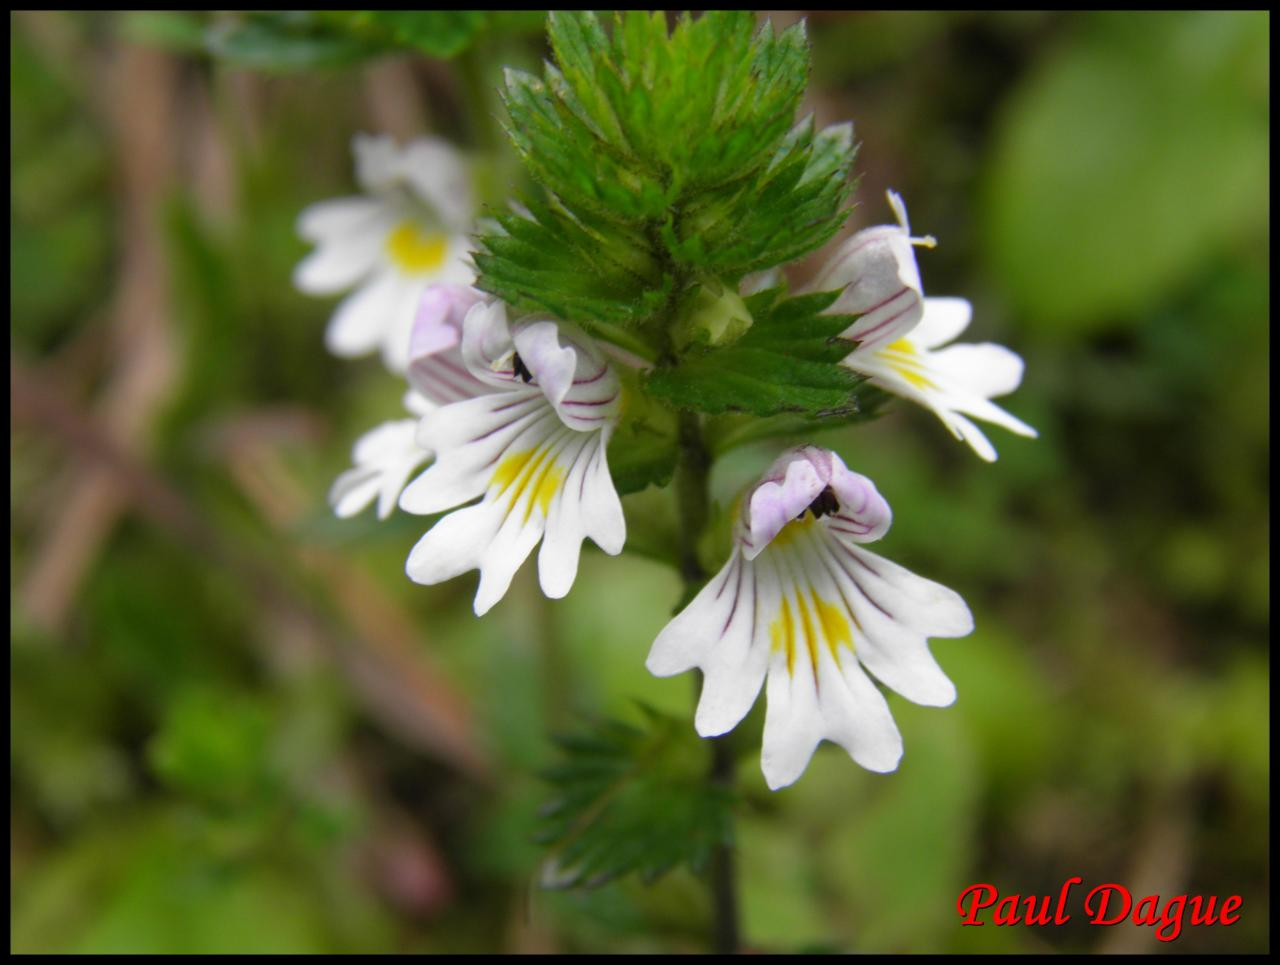 casse lunette-euphrasia officinalis-scrophulariacée